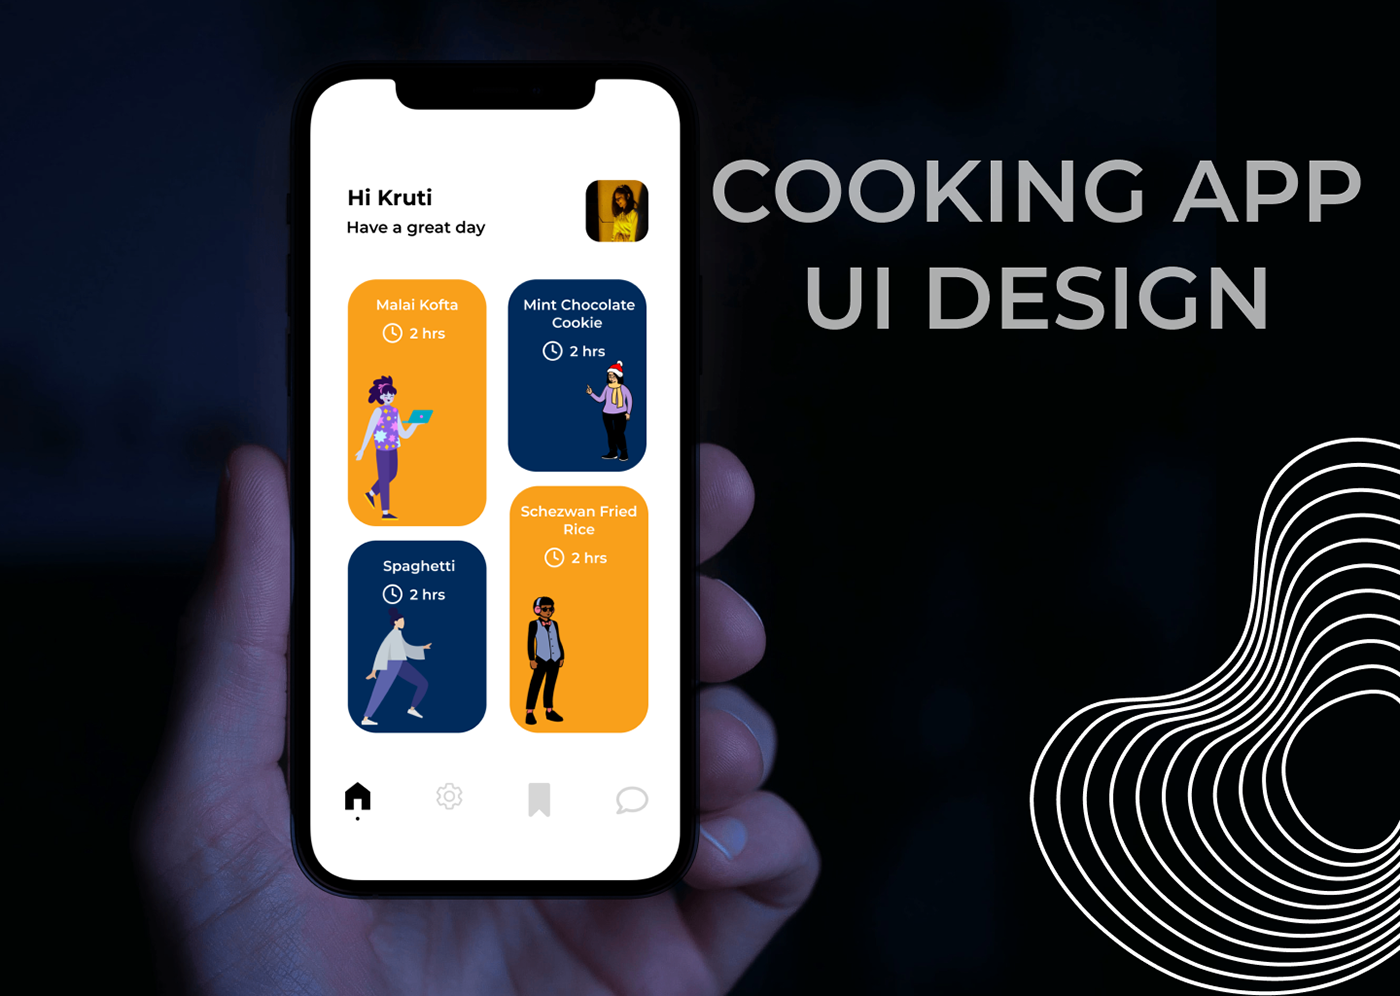 app cooking graphics icons ILLUSTRATION  mobile Mockup typography   UI ux